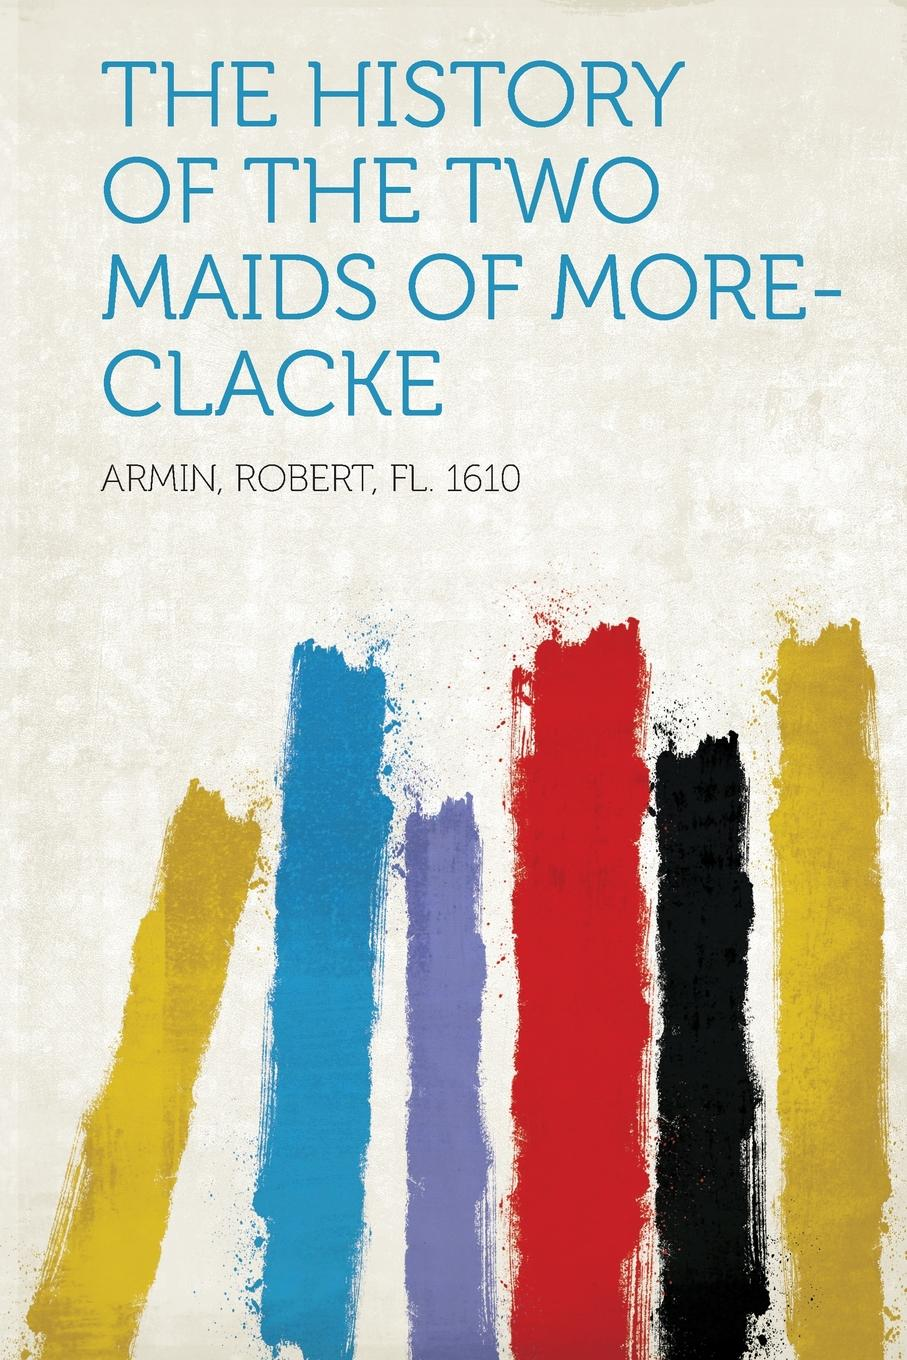 The History of the Two Maids of More-Clacke